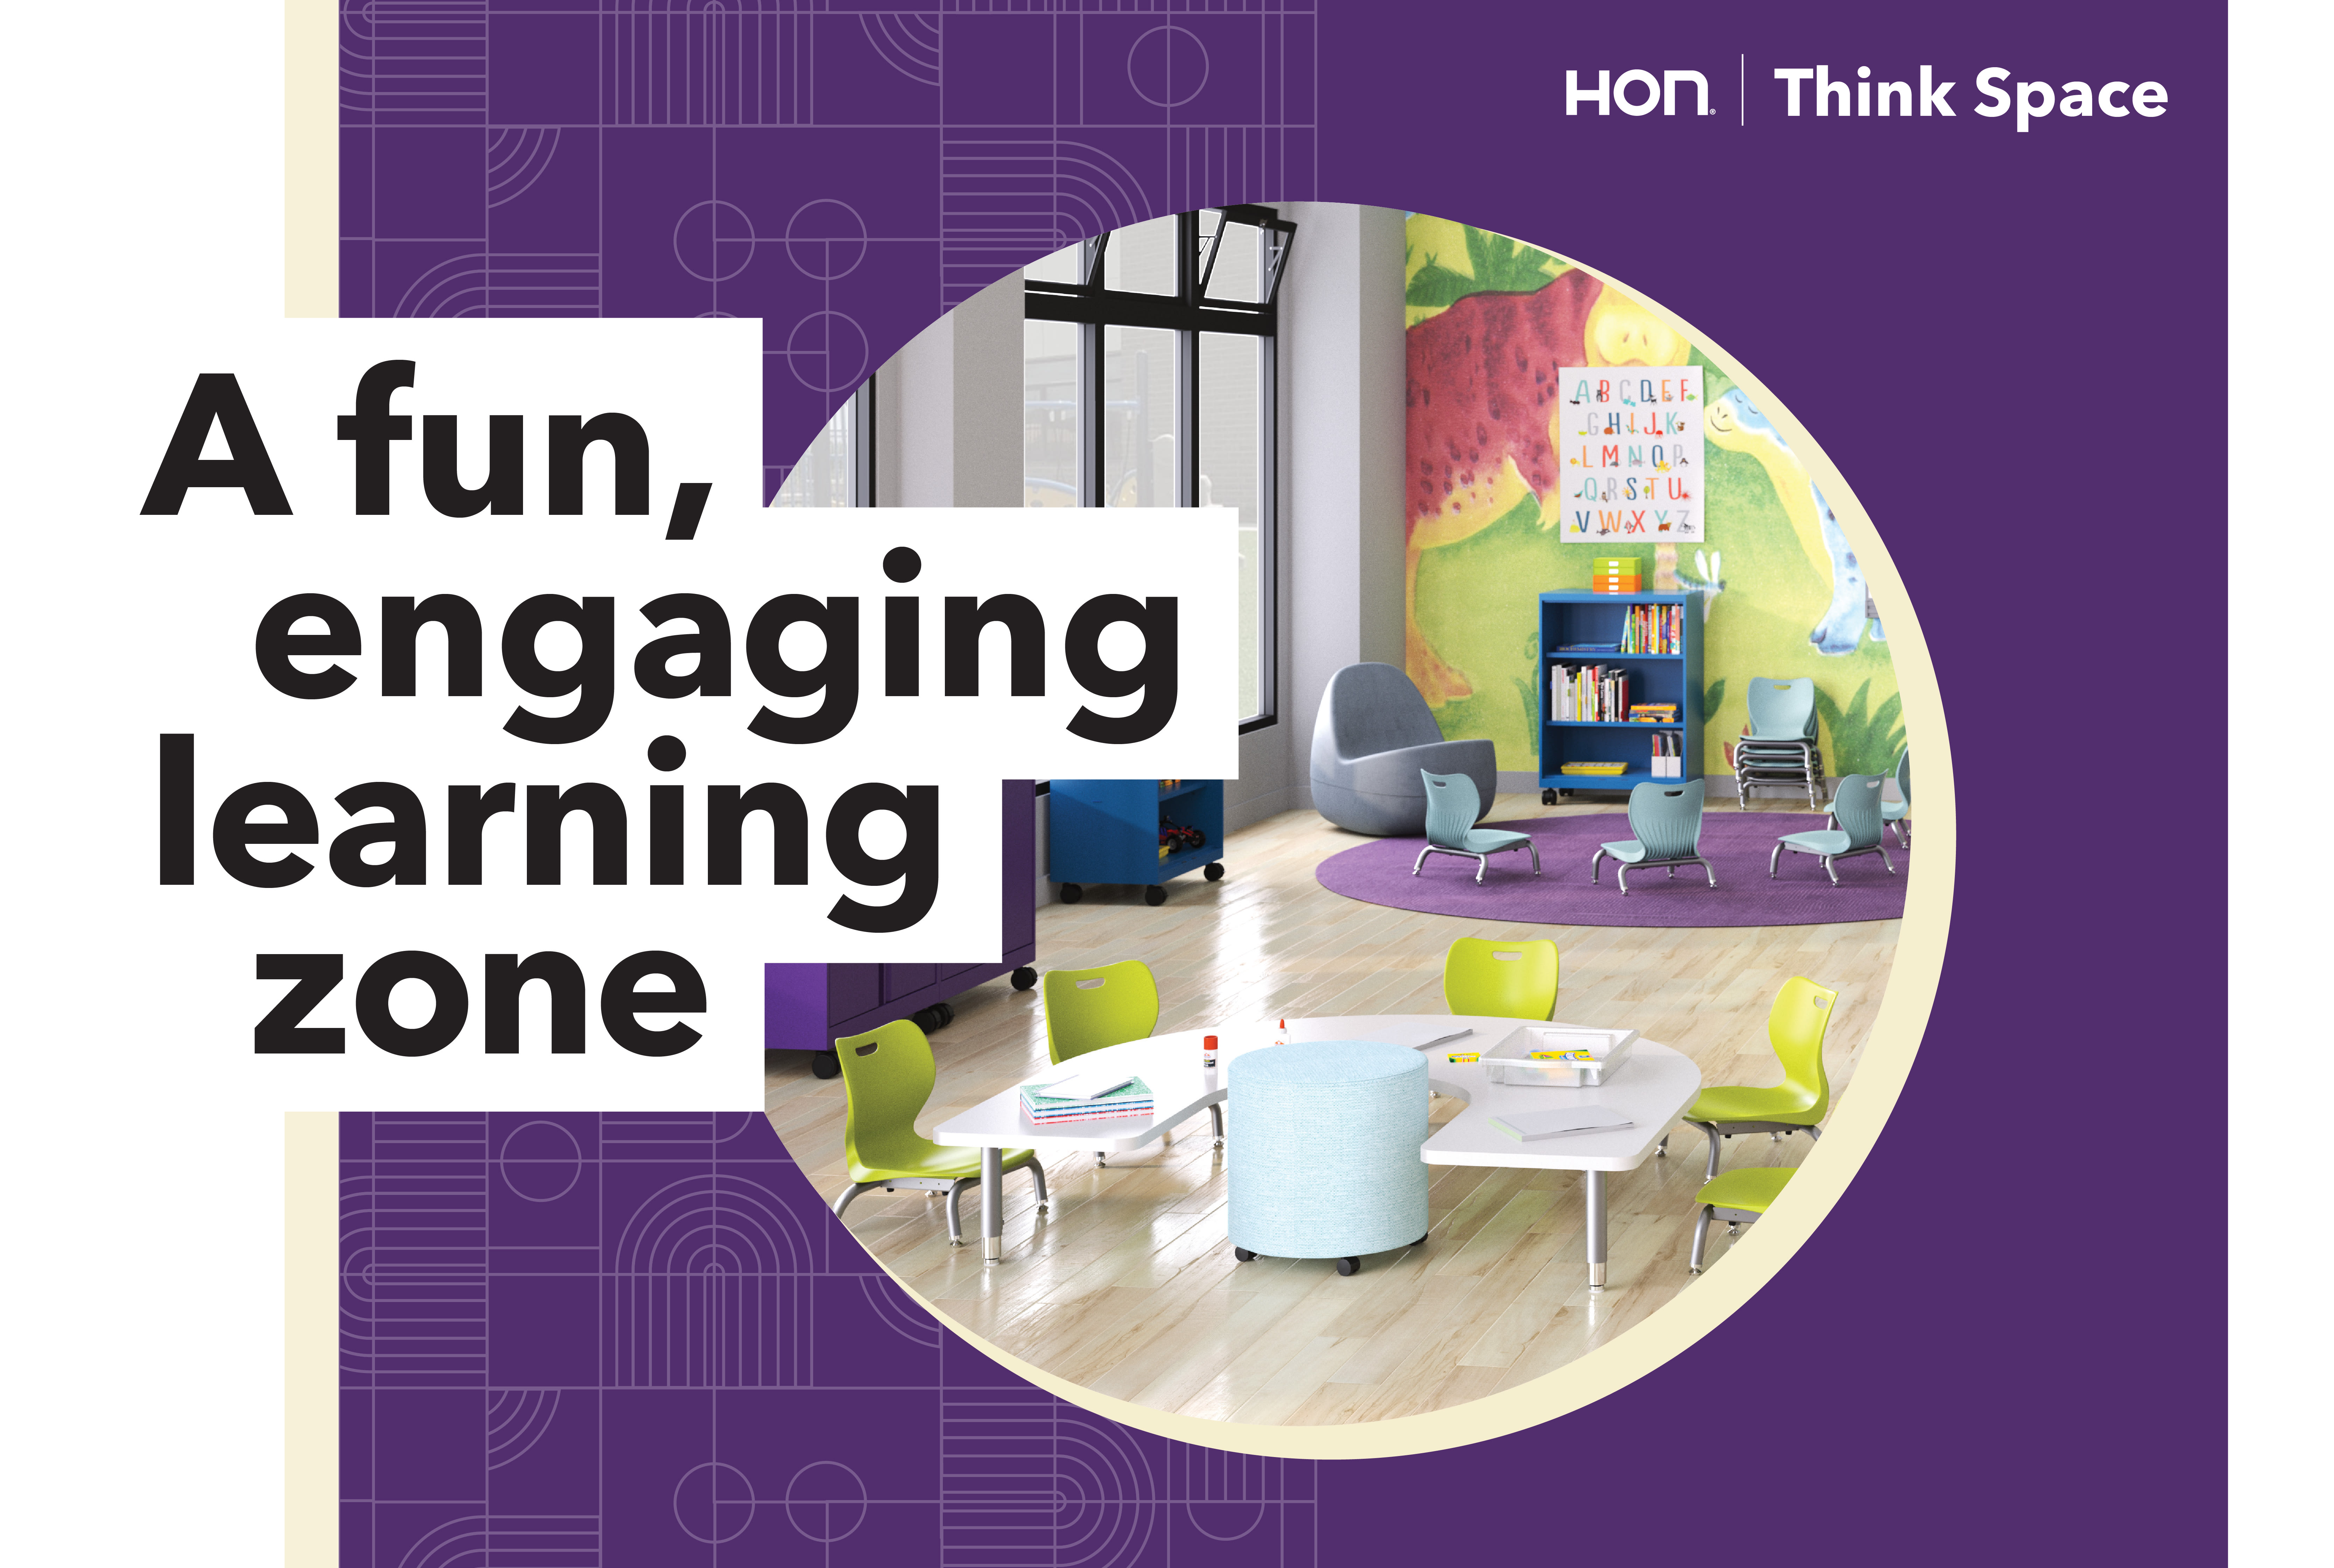 A fun, engaging learning zone